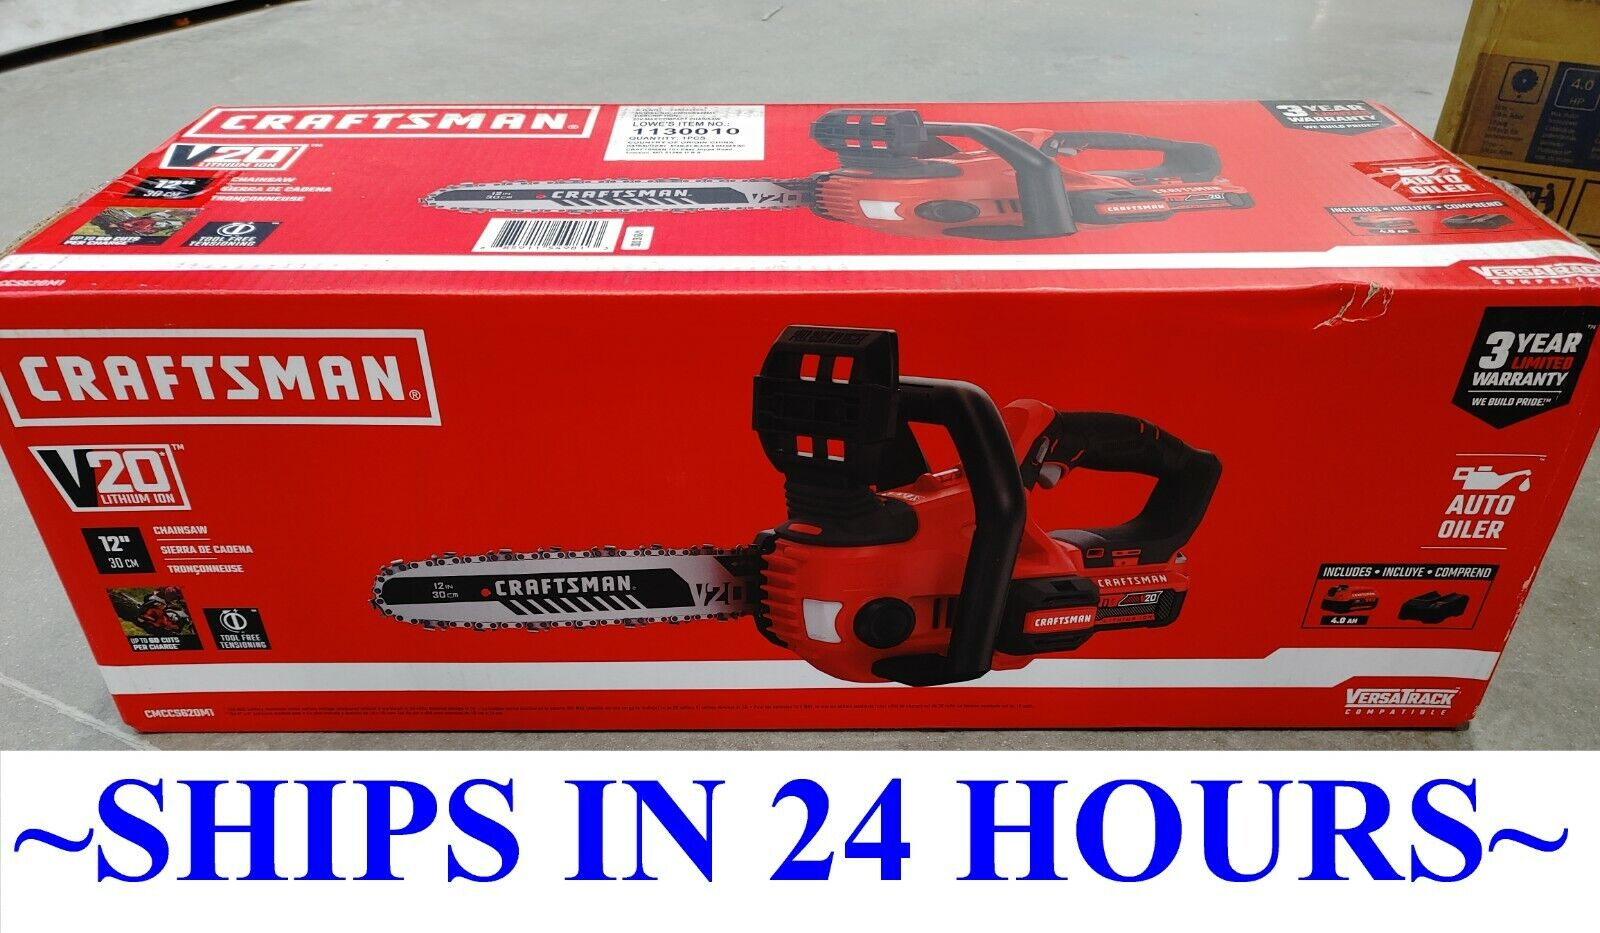 """CRAFTSMAN CMCCS620M1 V20 12"""" Cordless Compact Chainsaw"""